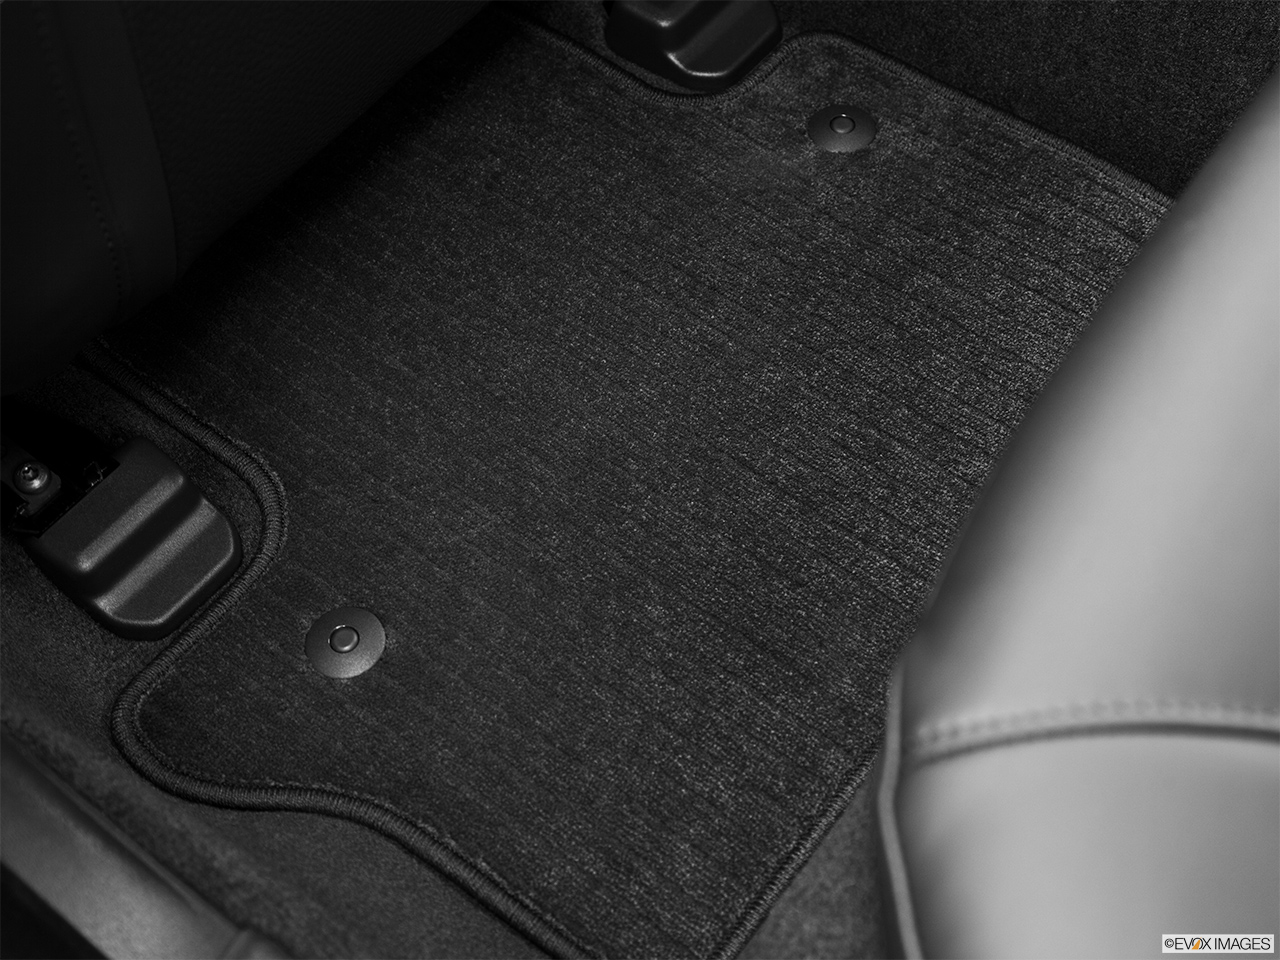 2013 Volvo S80 3.2 Platinum Rear driver's side floor mat. Mid-seat level from outside looking in.